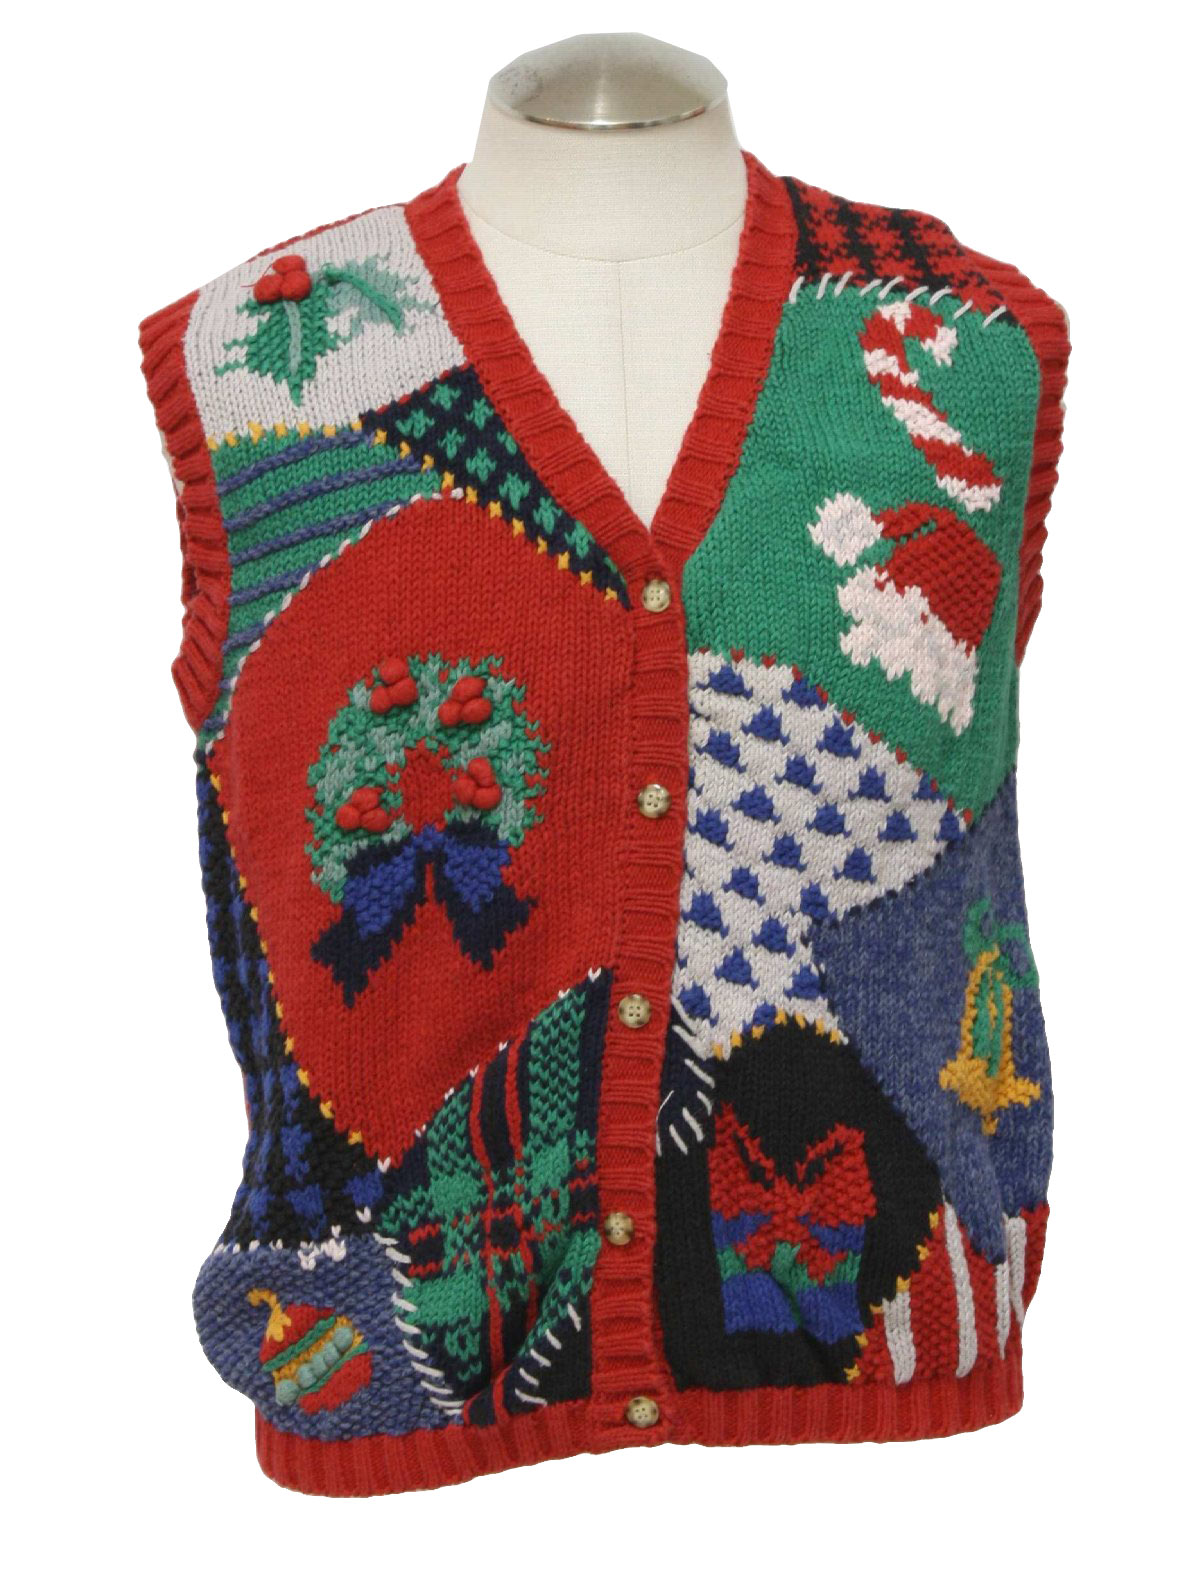 Ugly Christmas Sweater Vest Gladys Bagley Unisex Red